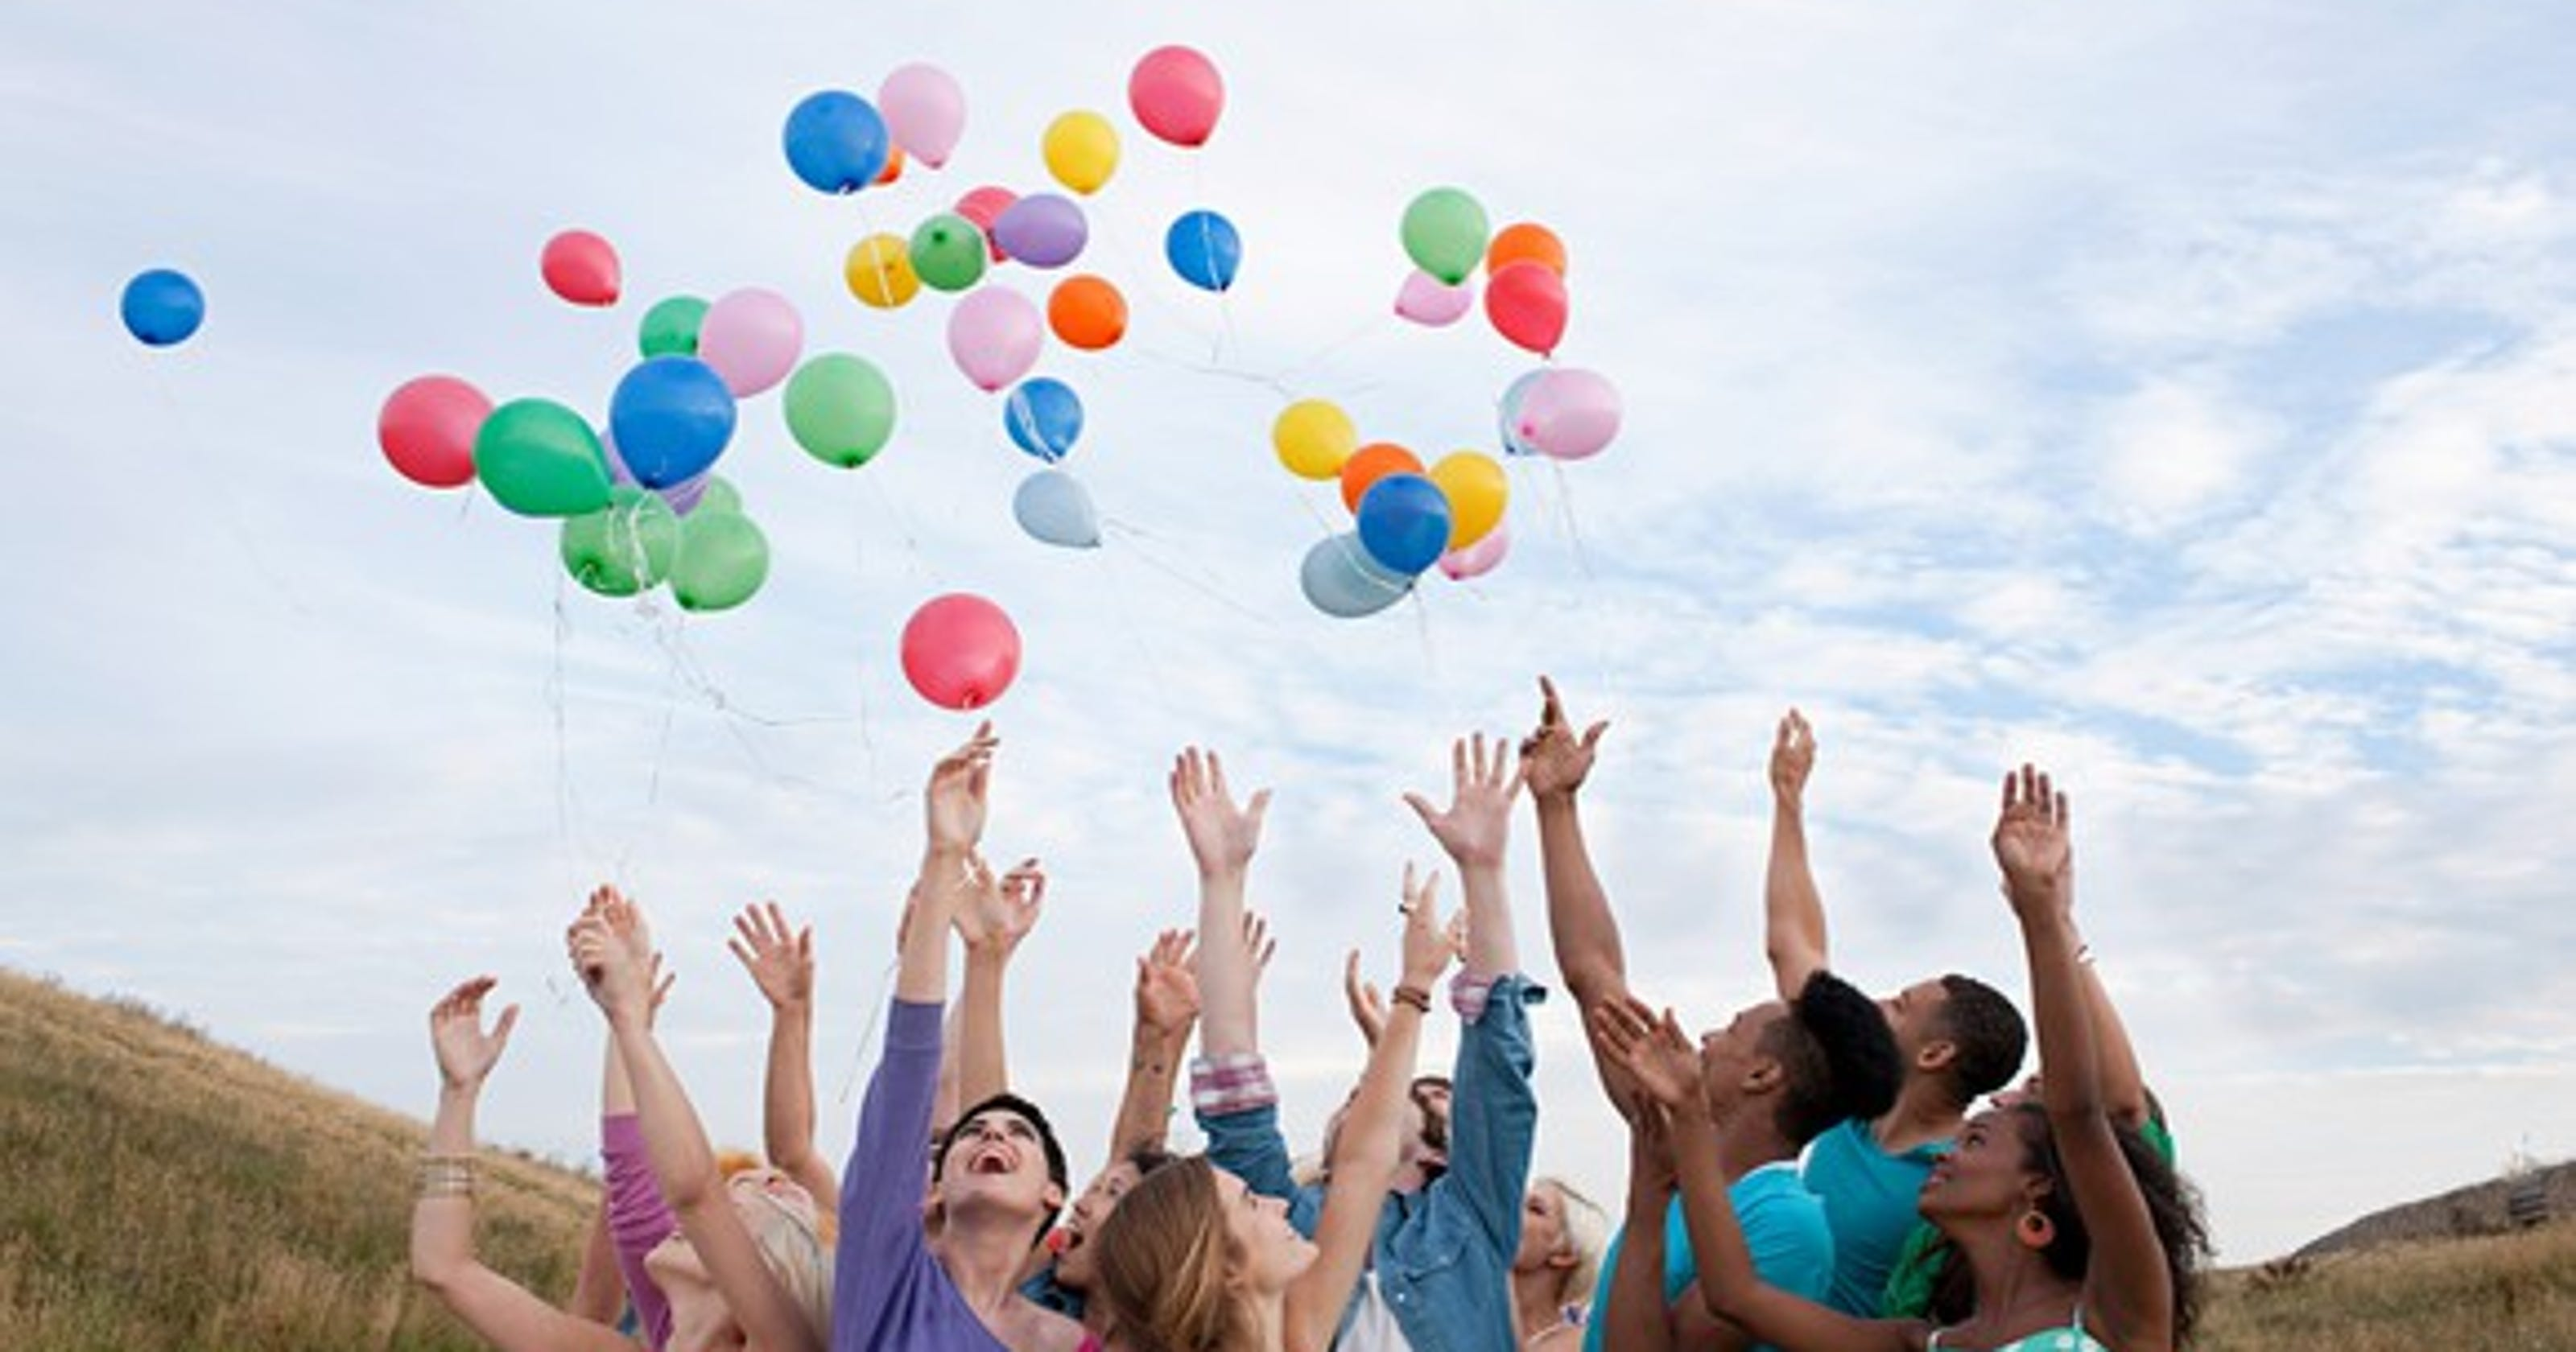 Balloon Bans After Straw Are Balloons Going To Be Next